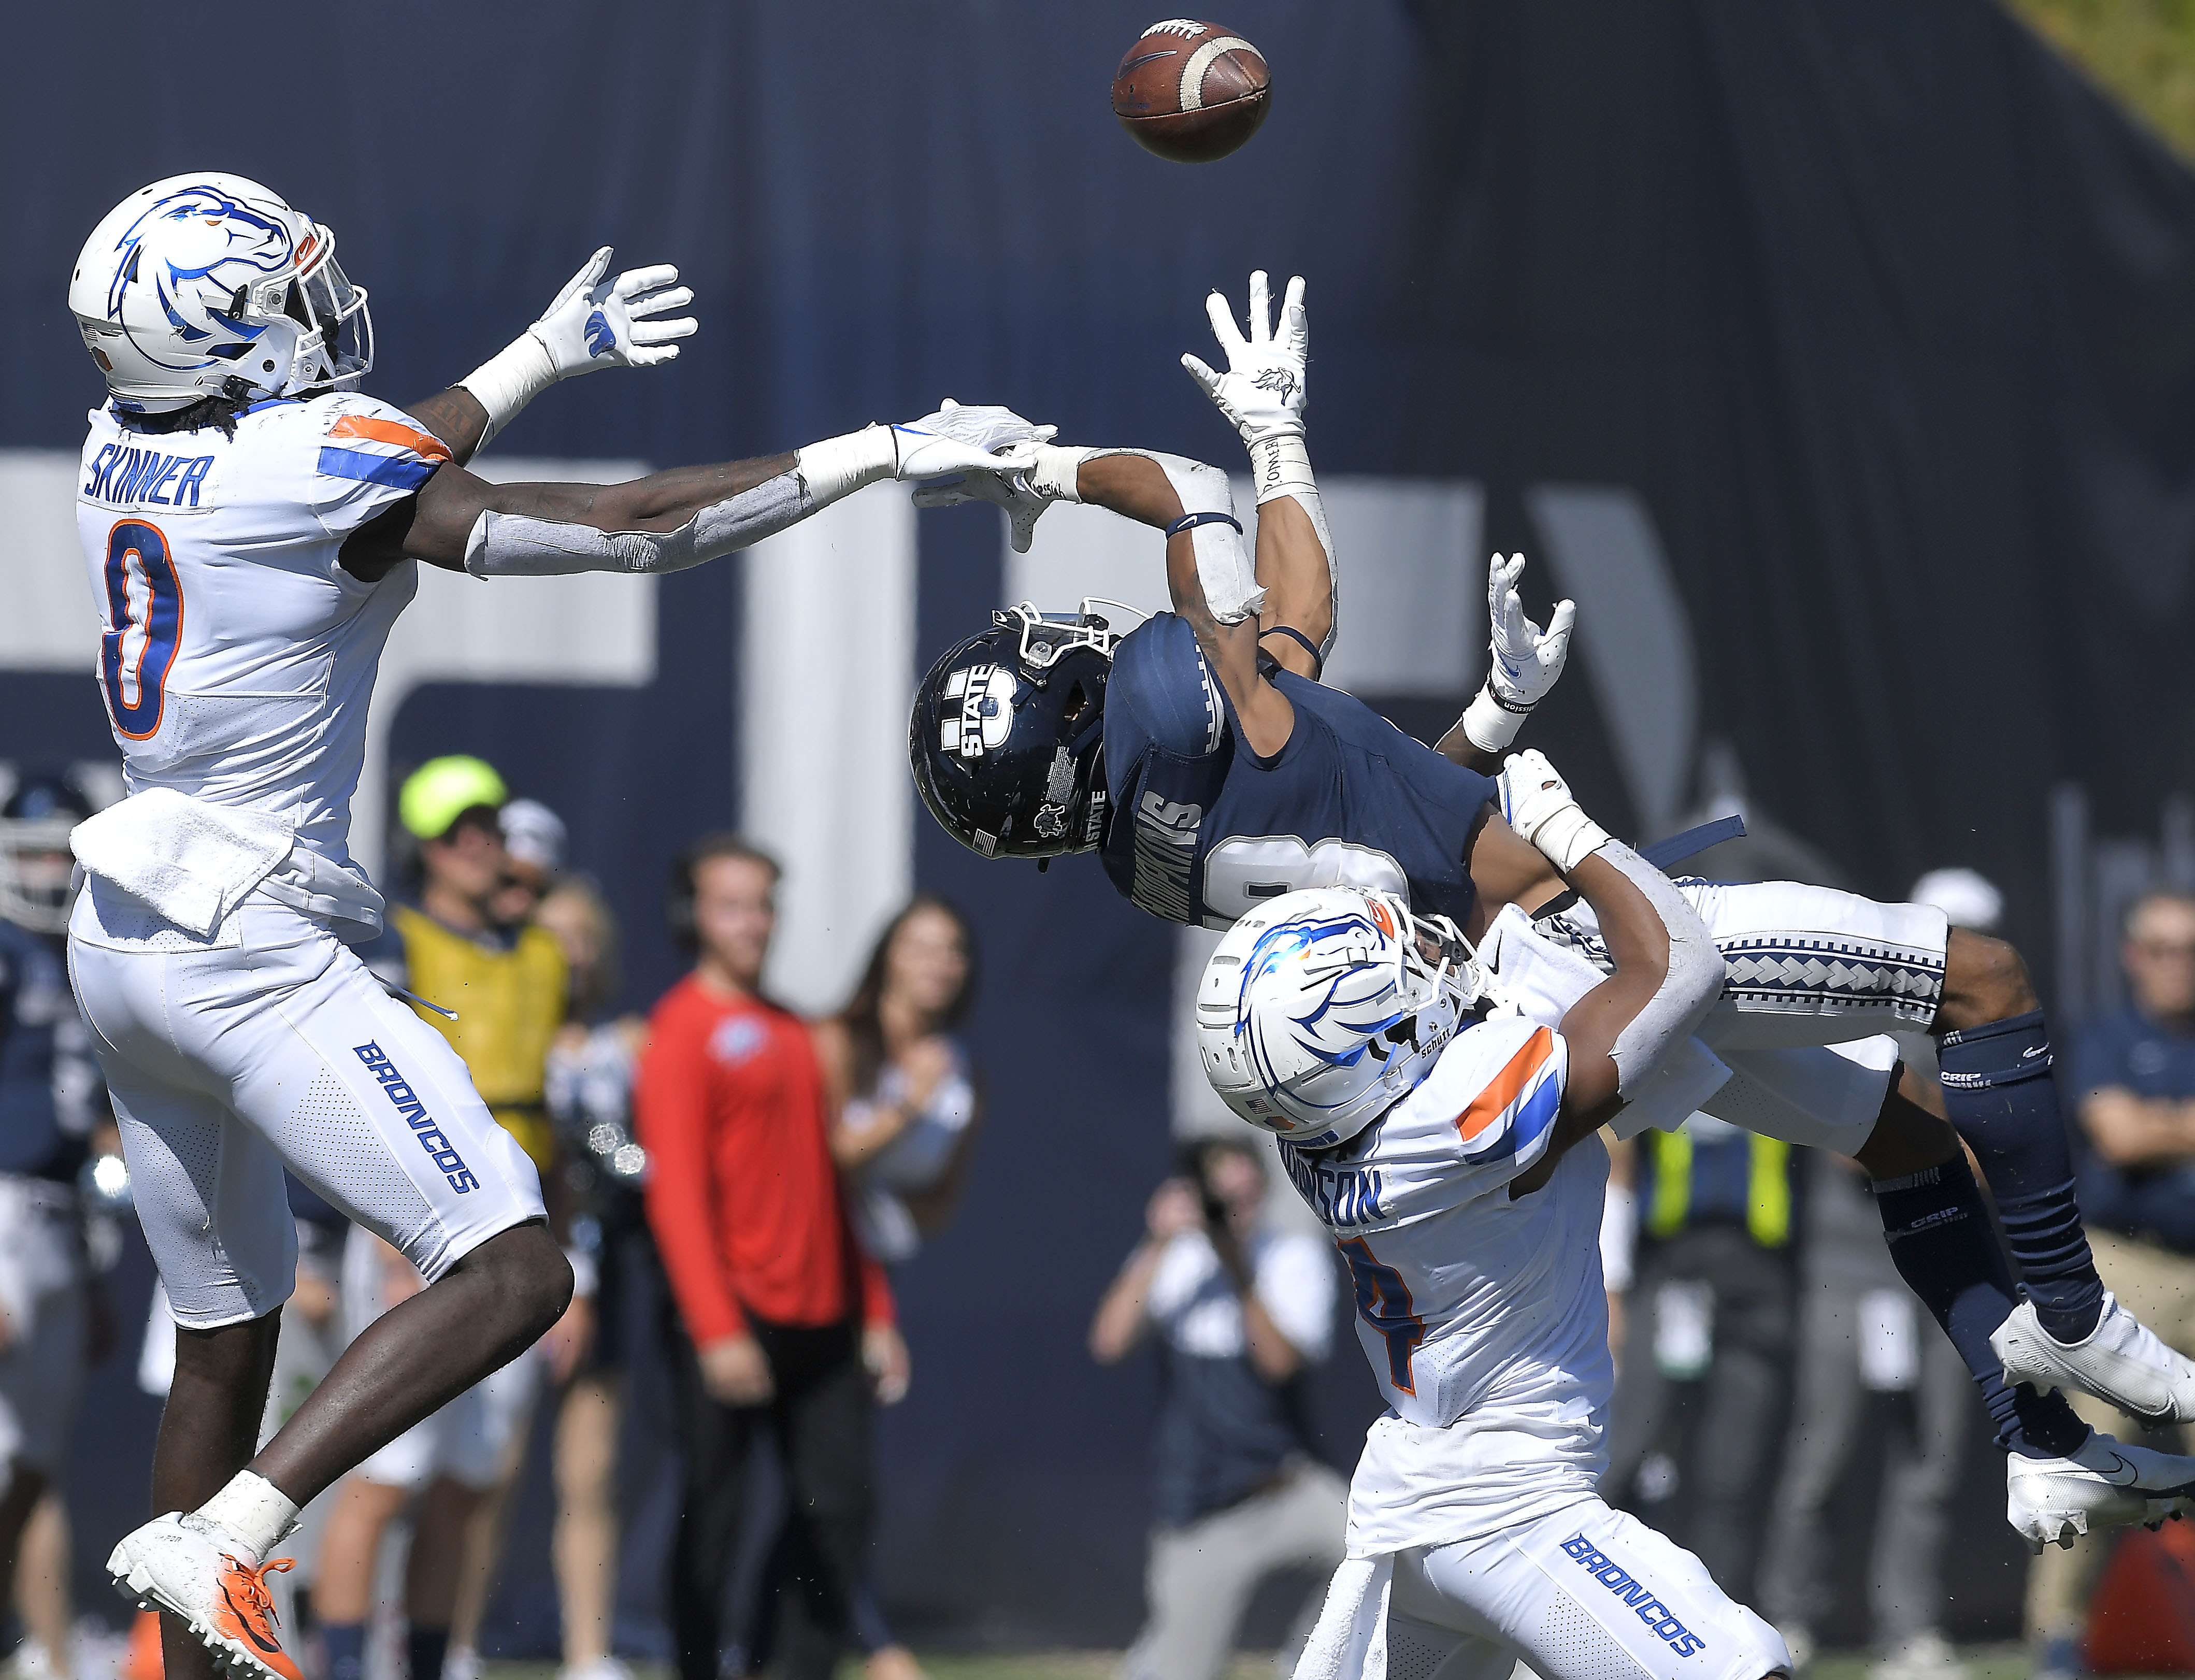 Boise State safety JL Skinner (0) and safety Rodney Robinson break up a pass intended for Utah State wide receiver Deven Thompkins (13).